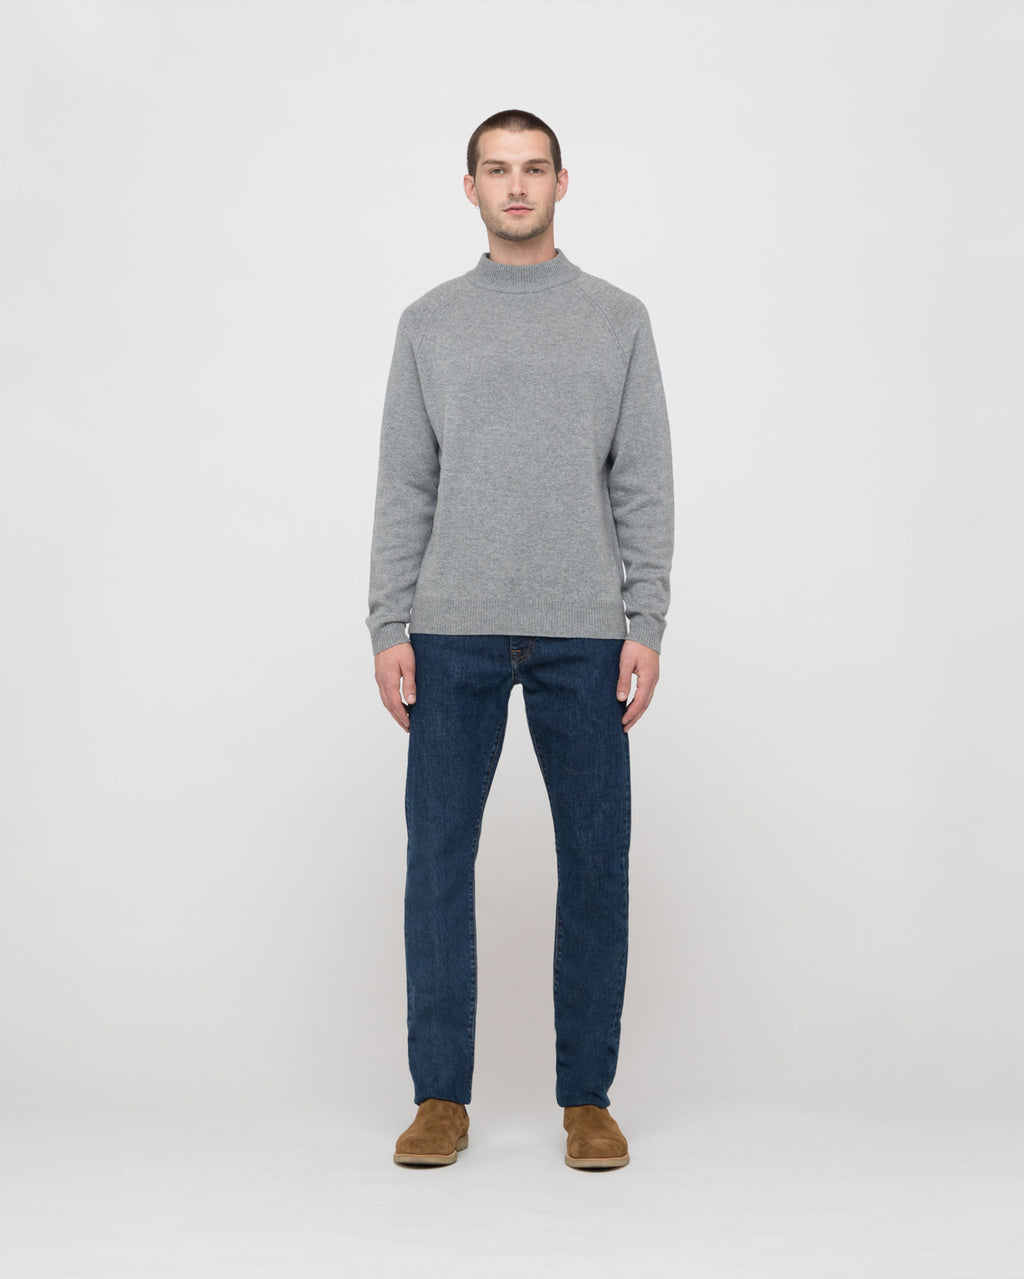 The Altos Sweater in Heather Grey